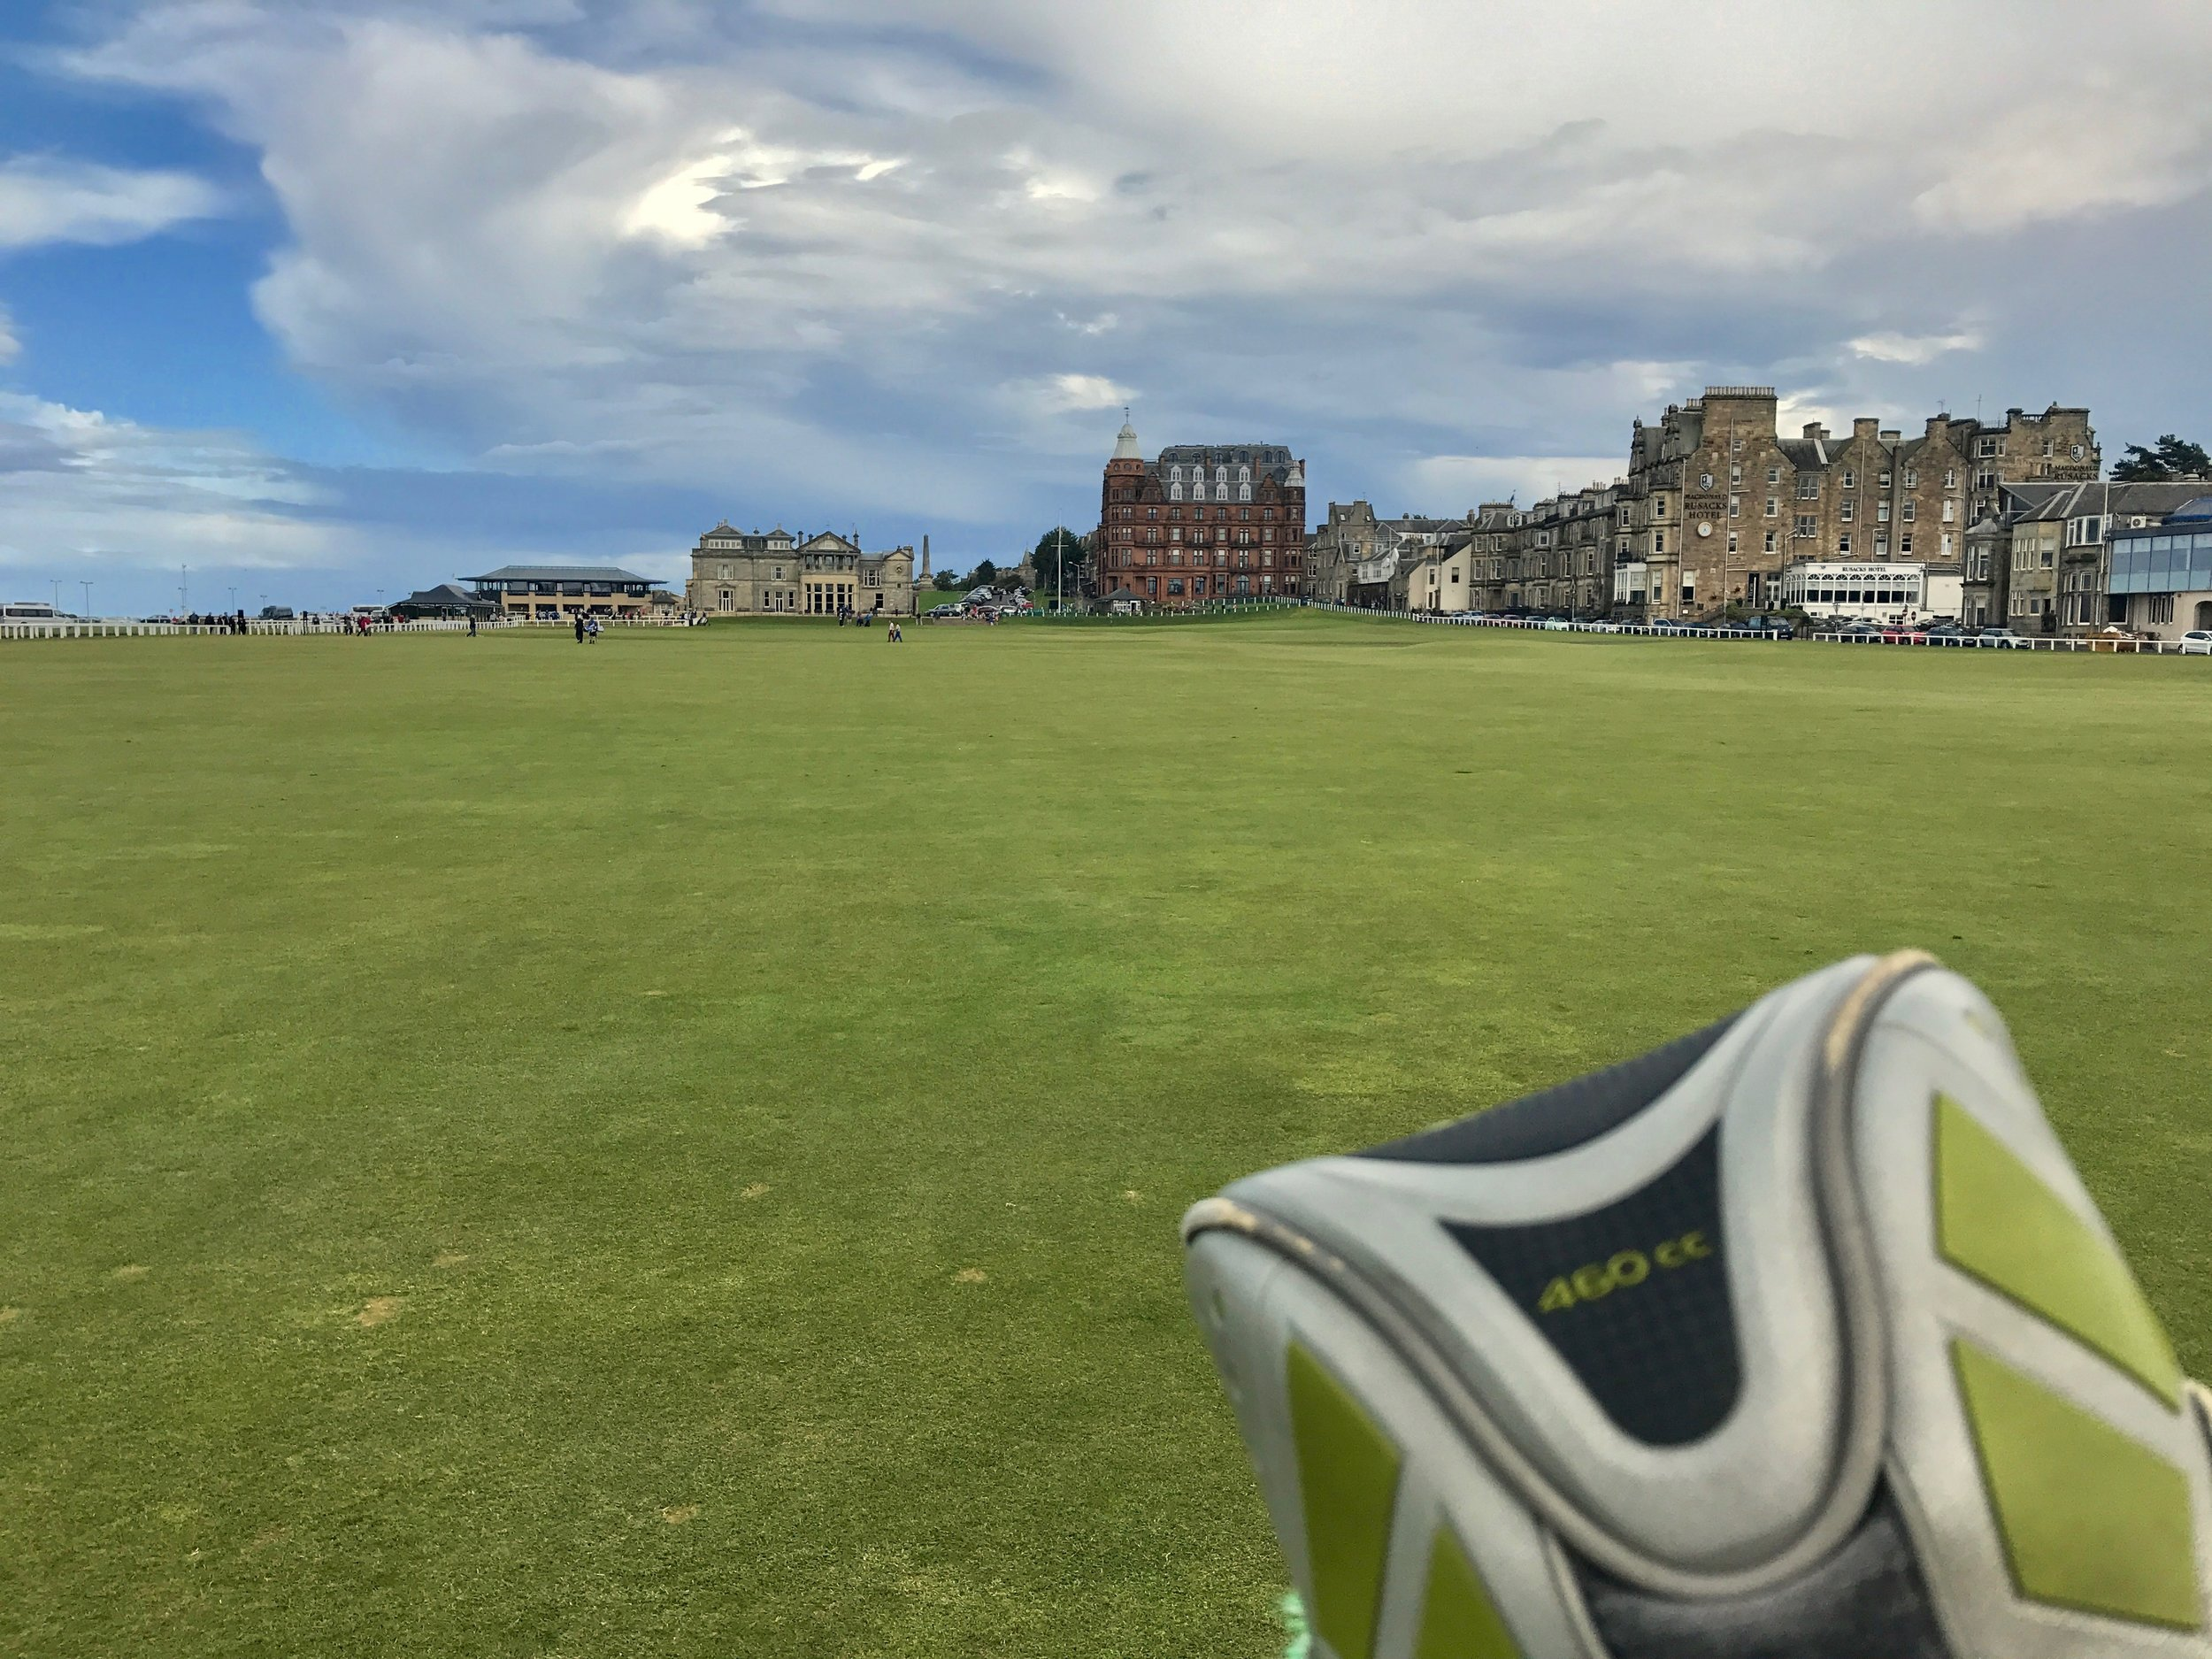 hochstein-design-best-of-2017-part-3-st-andrews-old-course-playing-1.jpg